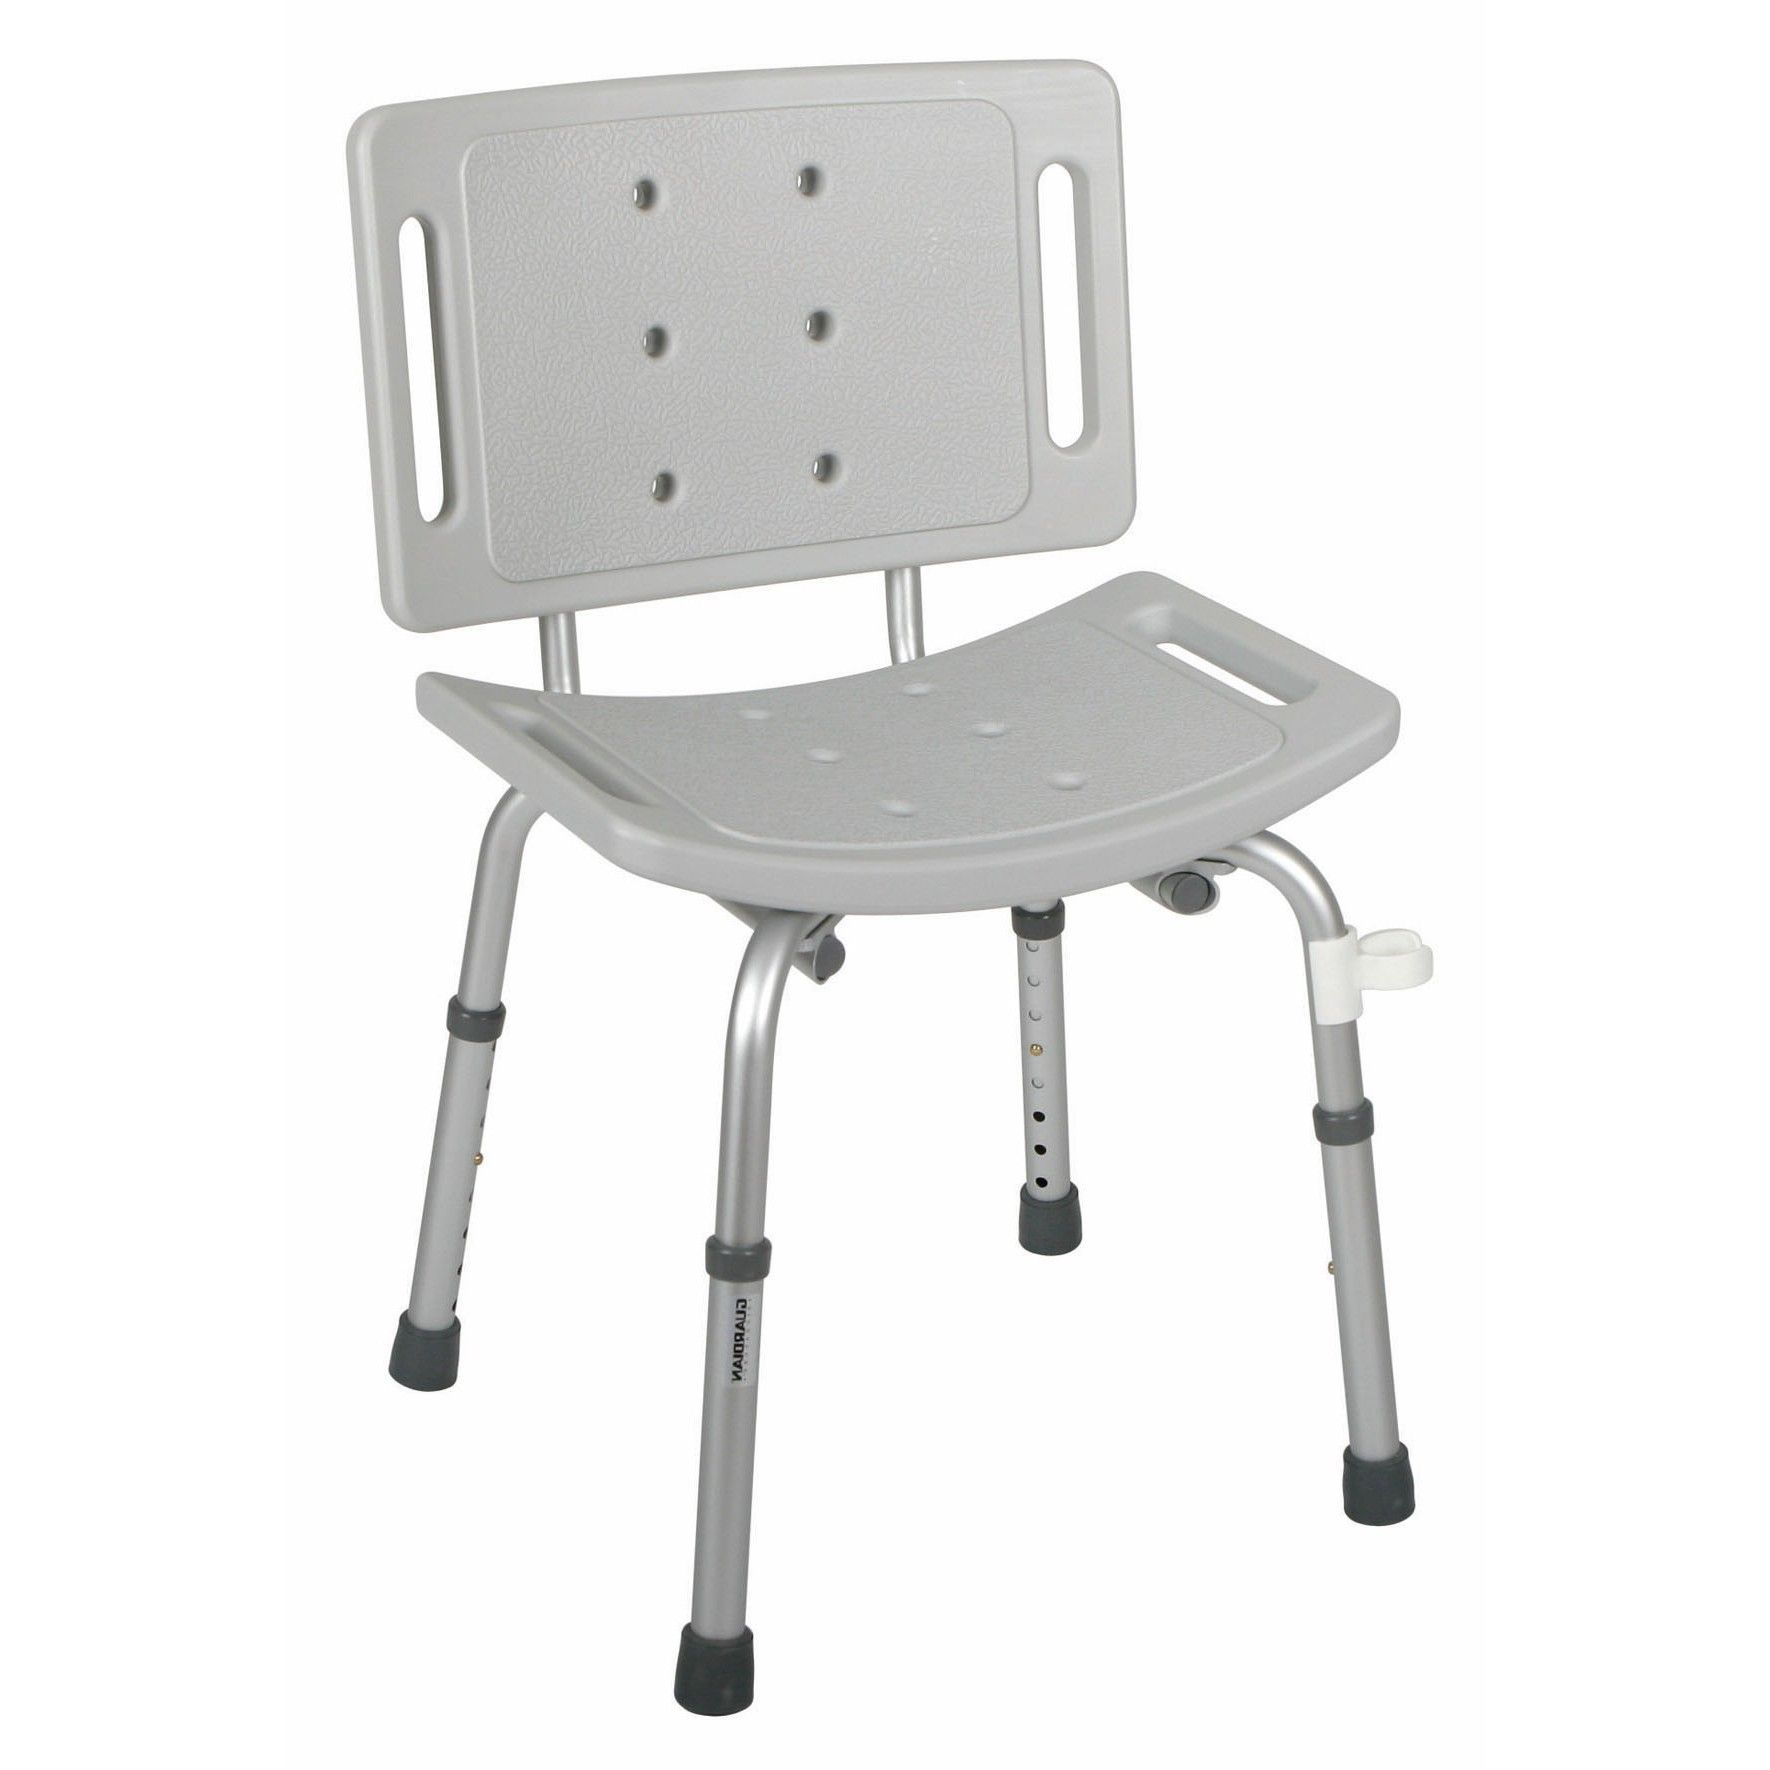 Elderly Shower Chair Bathtub Handicap Accessories Bath Chair For Disabled Bathroom Transfer Chair Shower Bench Shower Chair Chair